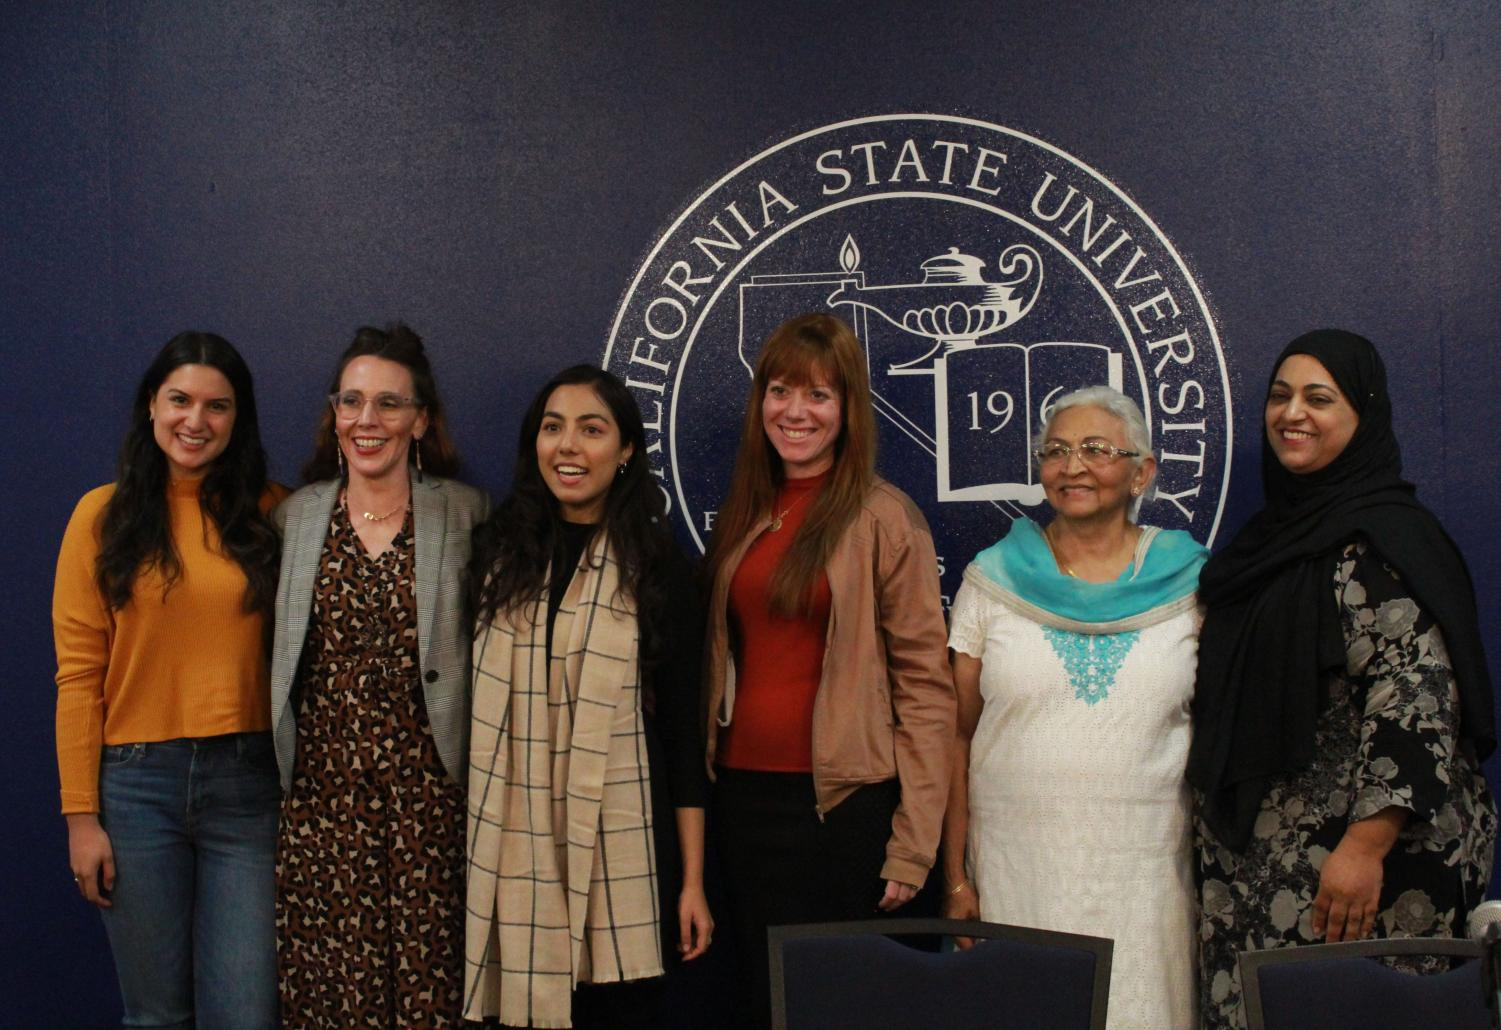 From left to right, Professor of Religious Studies Katy Hanson, CSUB student Nakiai Kiai, Common Grounds Club president Sumaiya Oila, Esther Schlanger, Sudha Bhatt, and Fauzia Shah during the Women, Religion, and Empowerment panel discussion hosted by Dr. John Young with Common Ground Club on Thursday November 21 in the Stockdale room at CSUB.